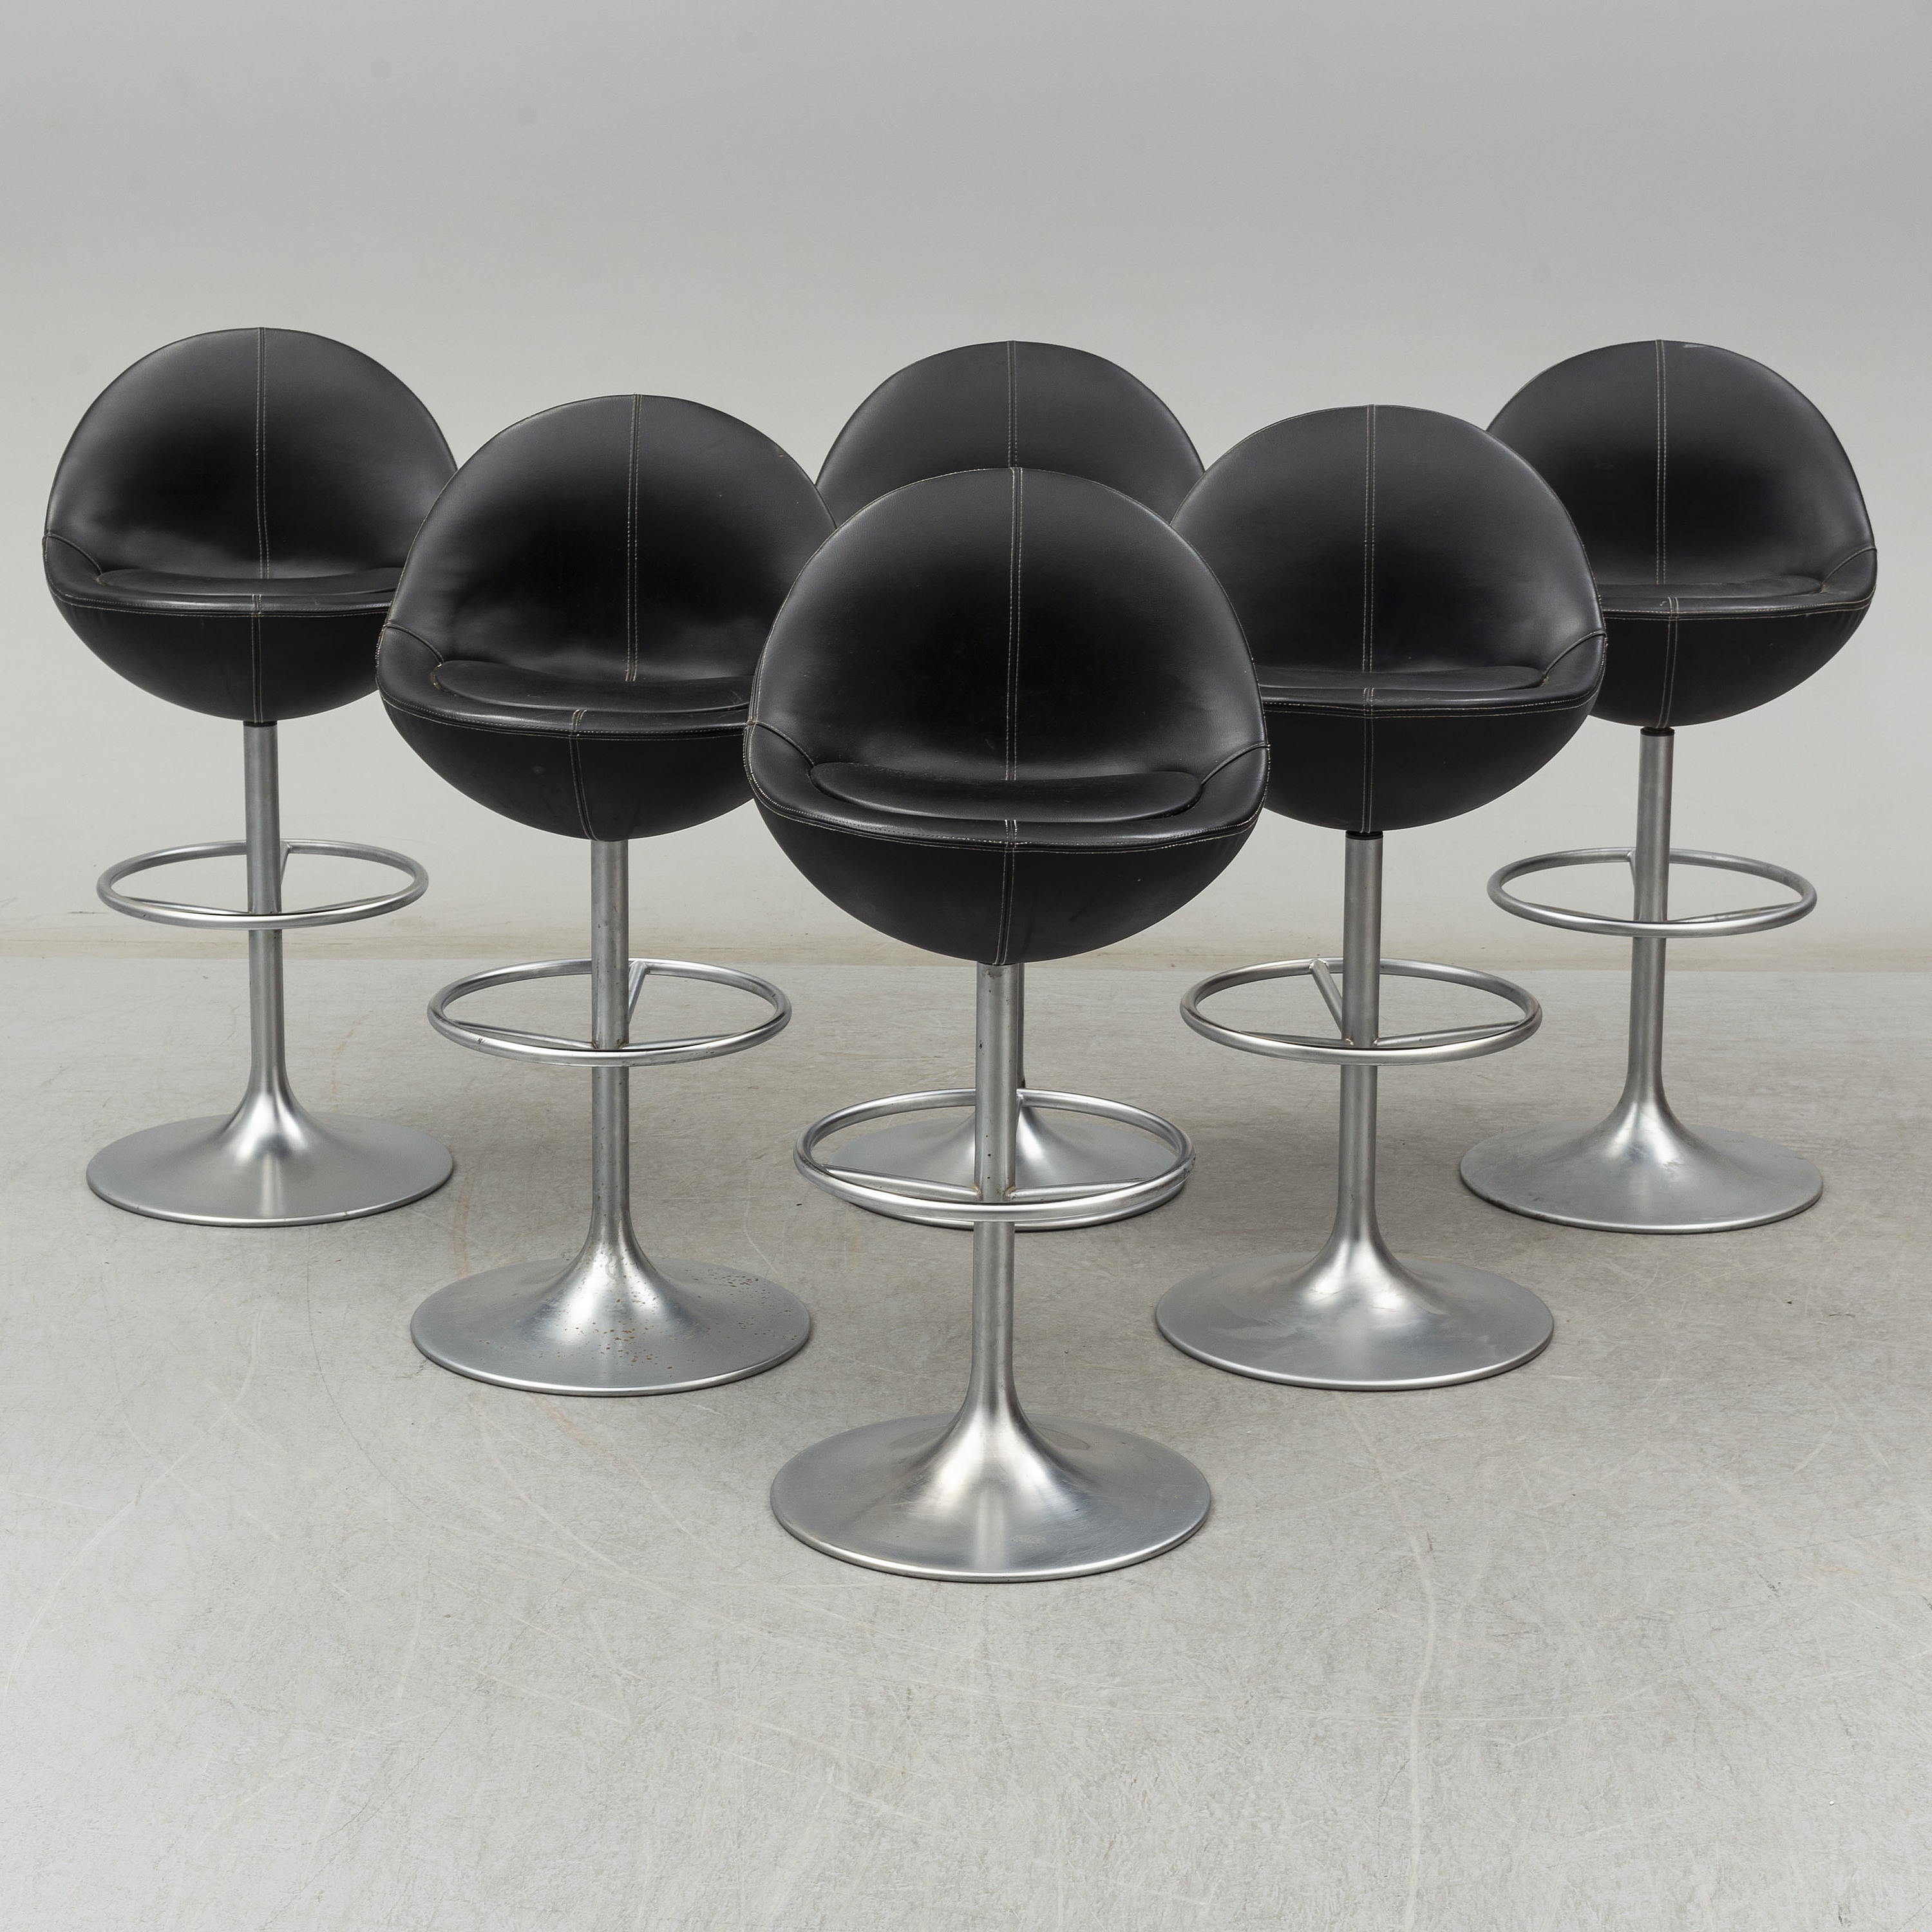 Remarkable Six Venus Barstools By Johansson Design Circa 2000 Beatyapartments Chair Design Images Beatyapartmentscom